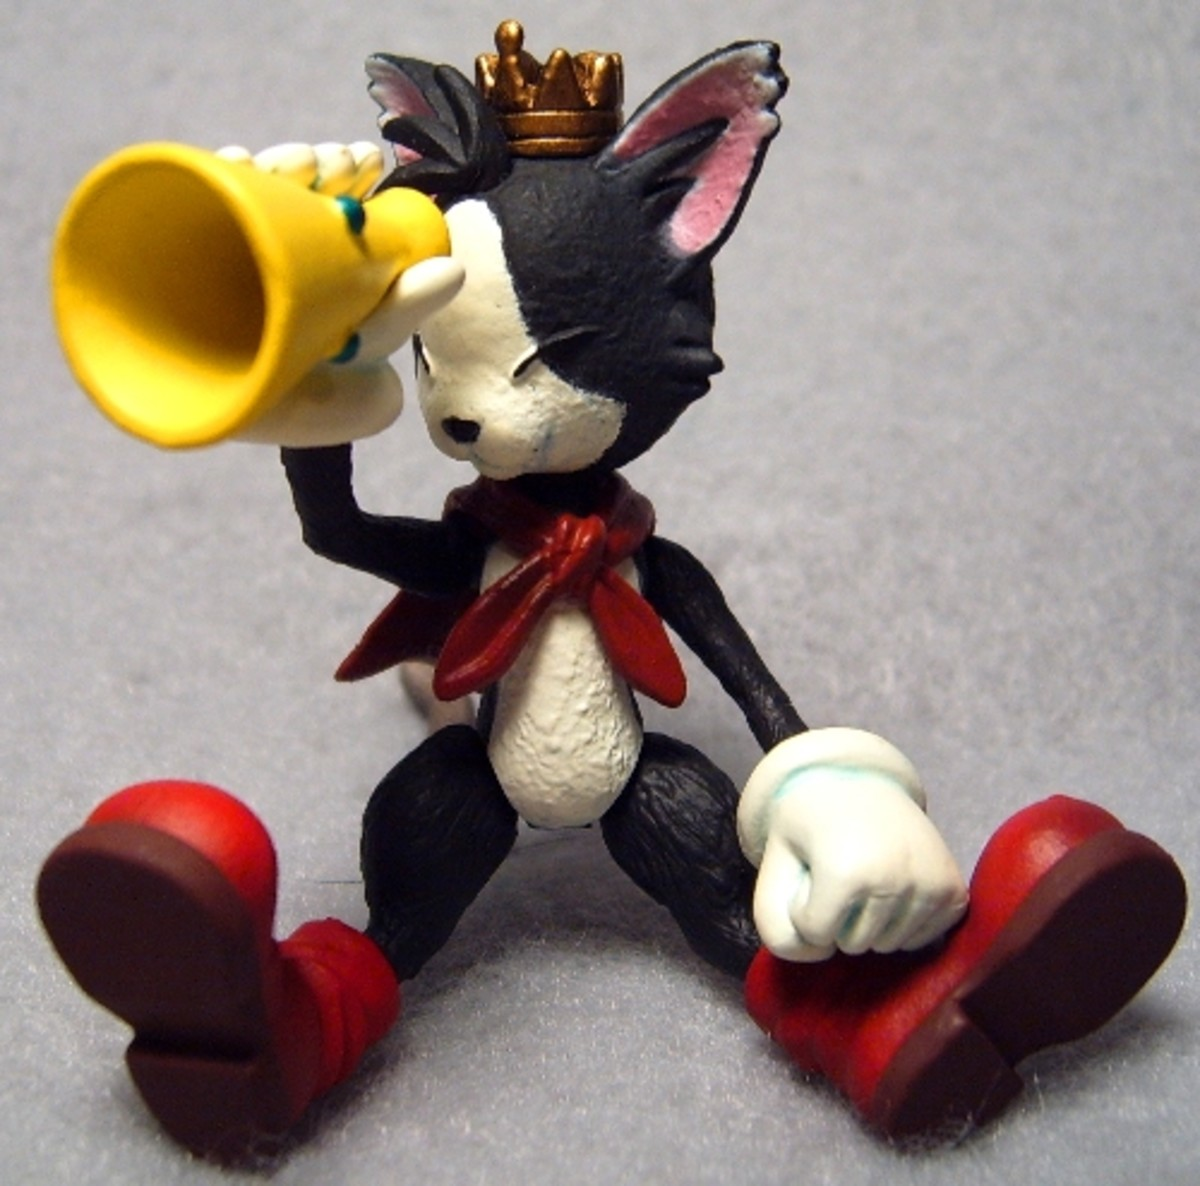 Cait Sith and his megaphone